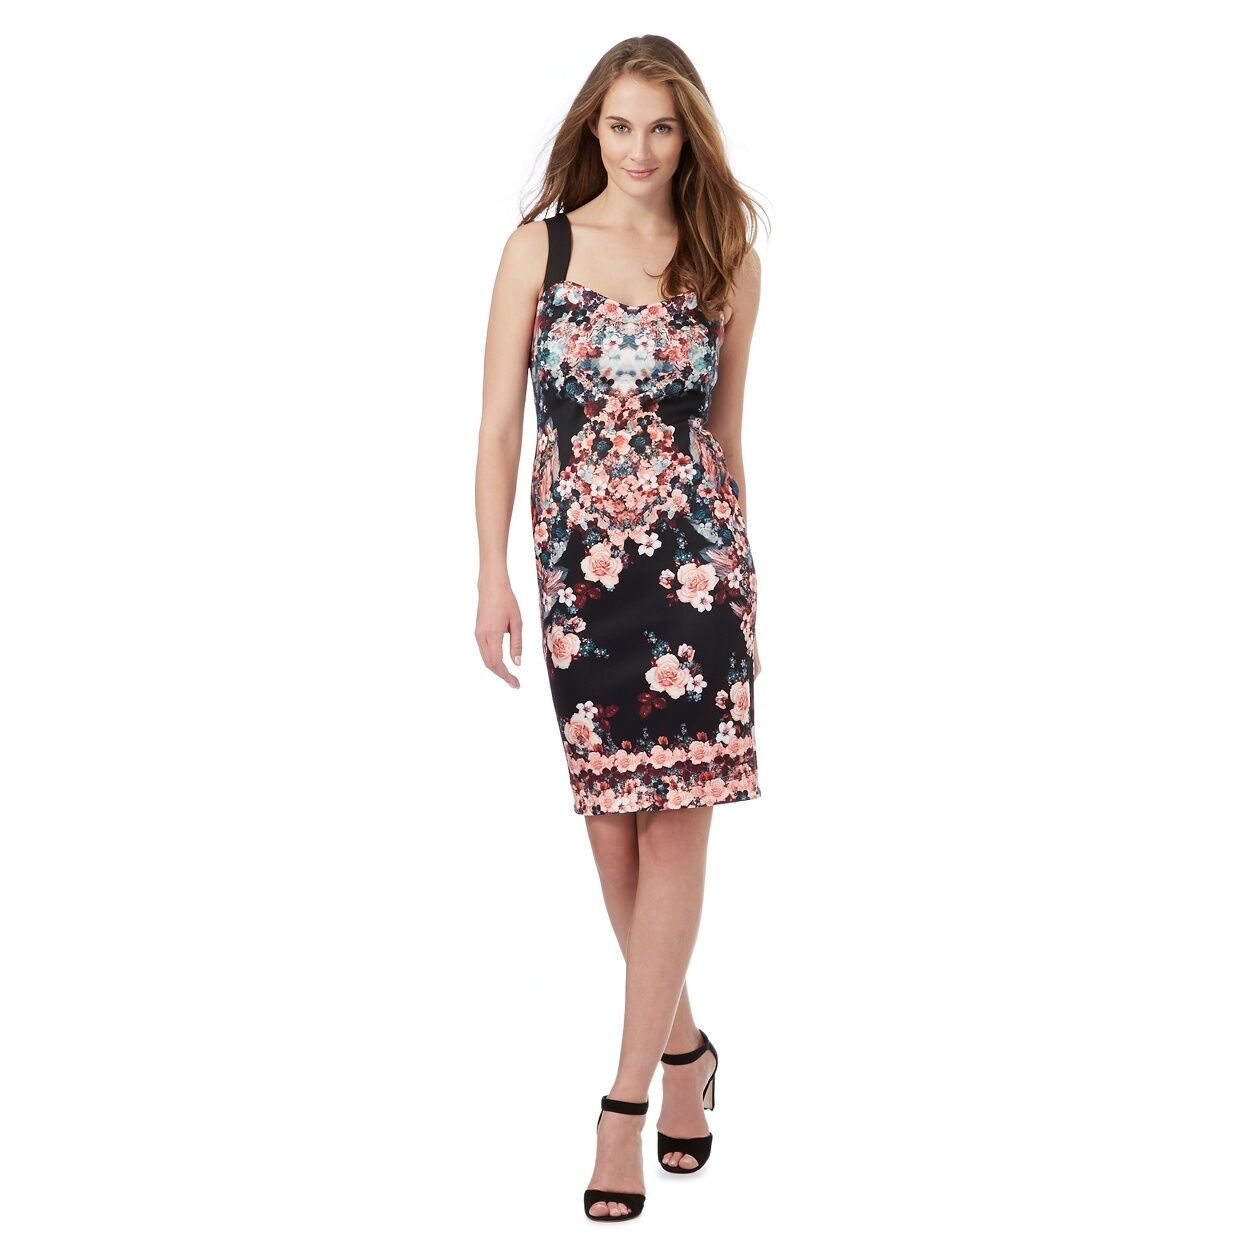 Star Julien Macdonald Floral Print Scuba Dress Größe UK 12 rrp  LF075 FF 12